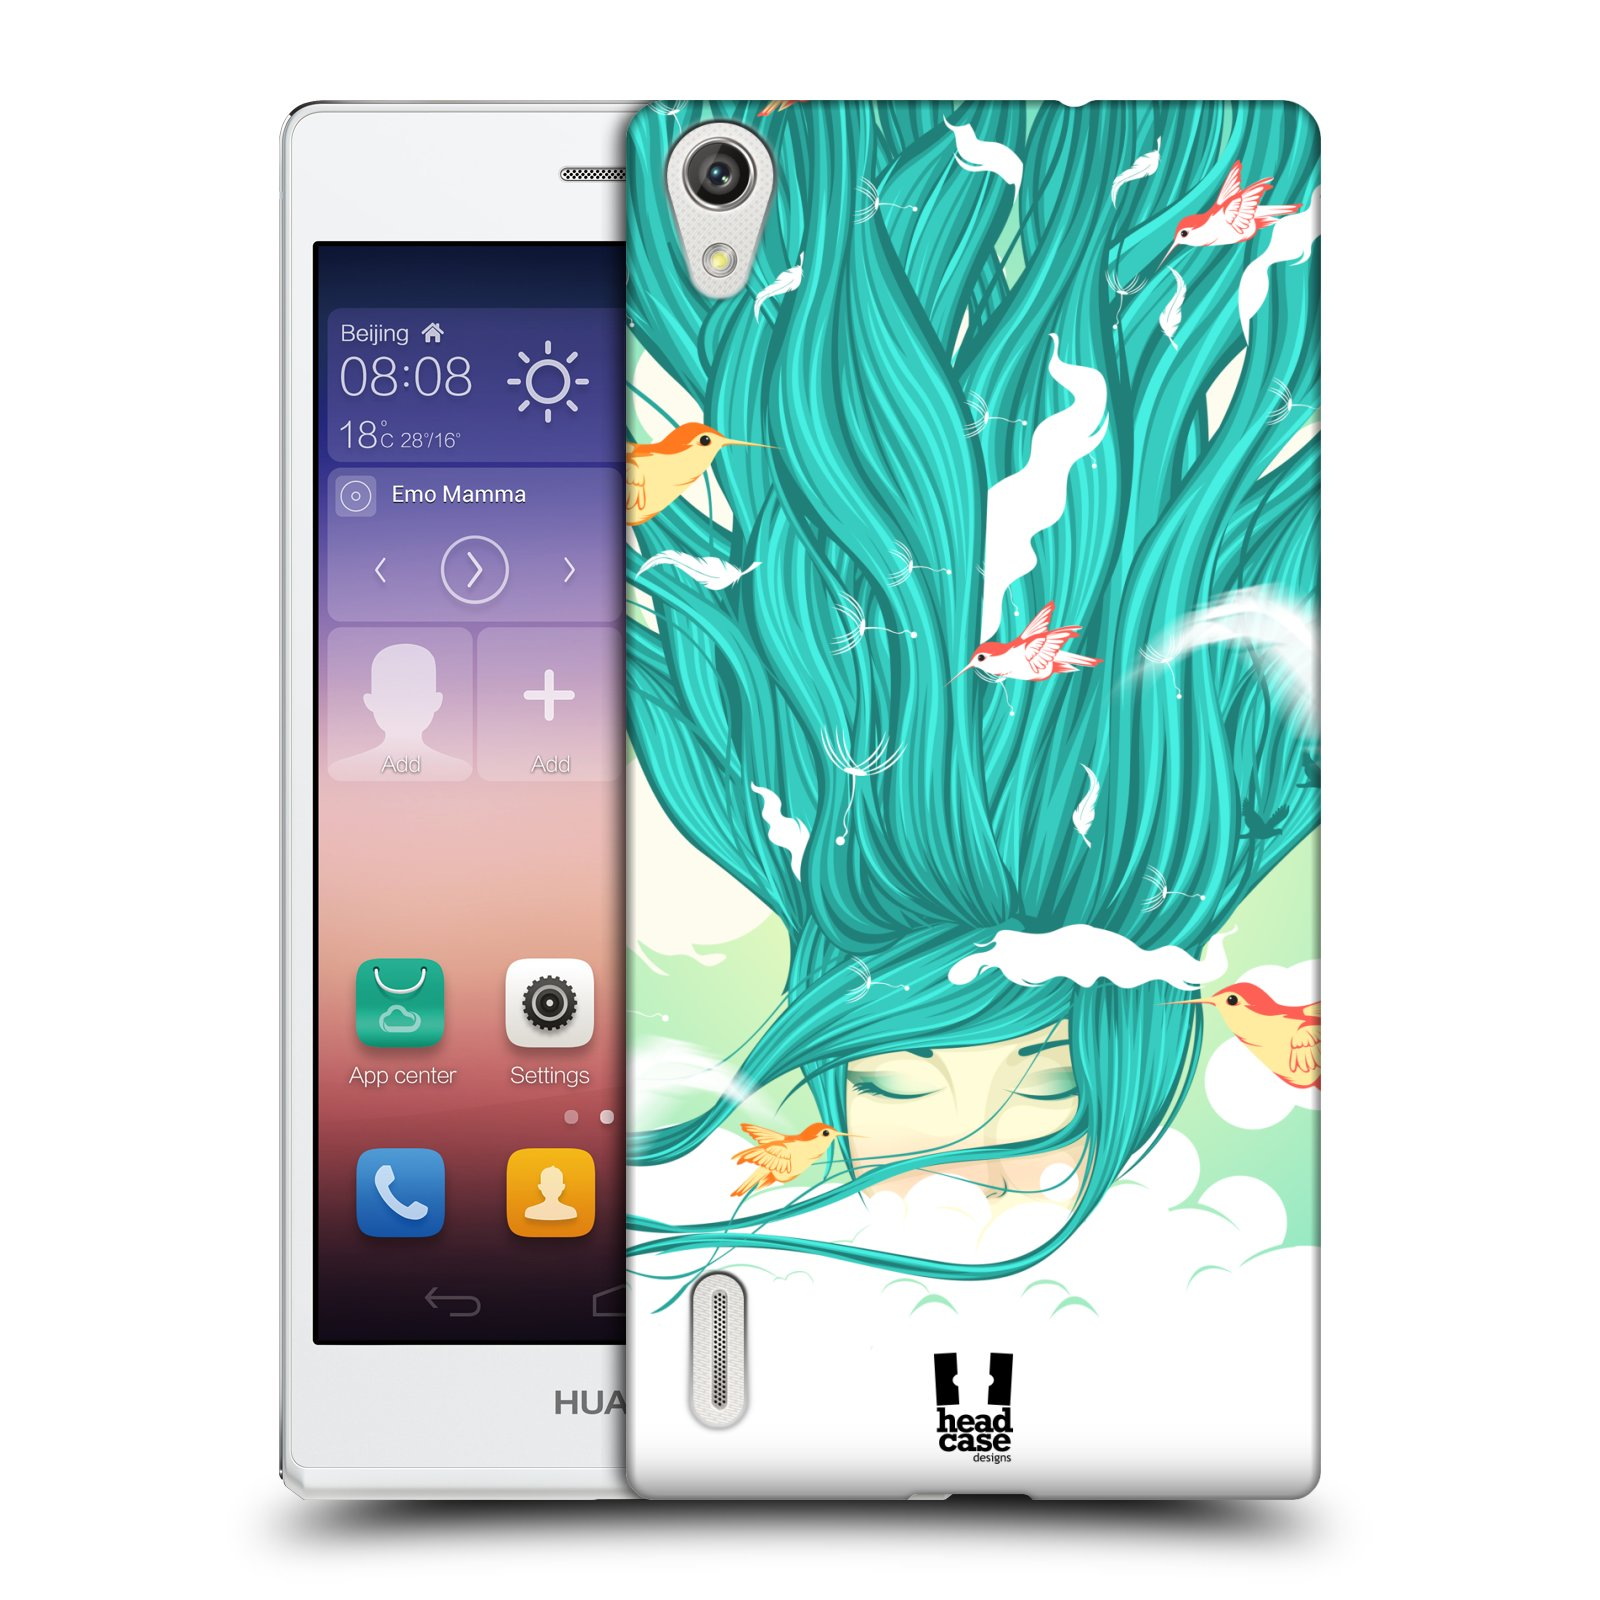 HEAD CASE DESIGNS GODDESSES OF ELEMENTS CASE FOR HUAWEI ASCEND P7 LTE